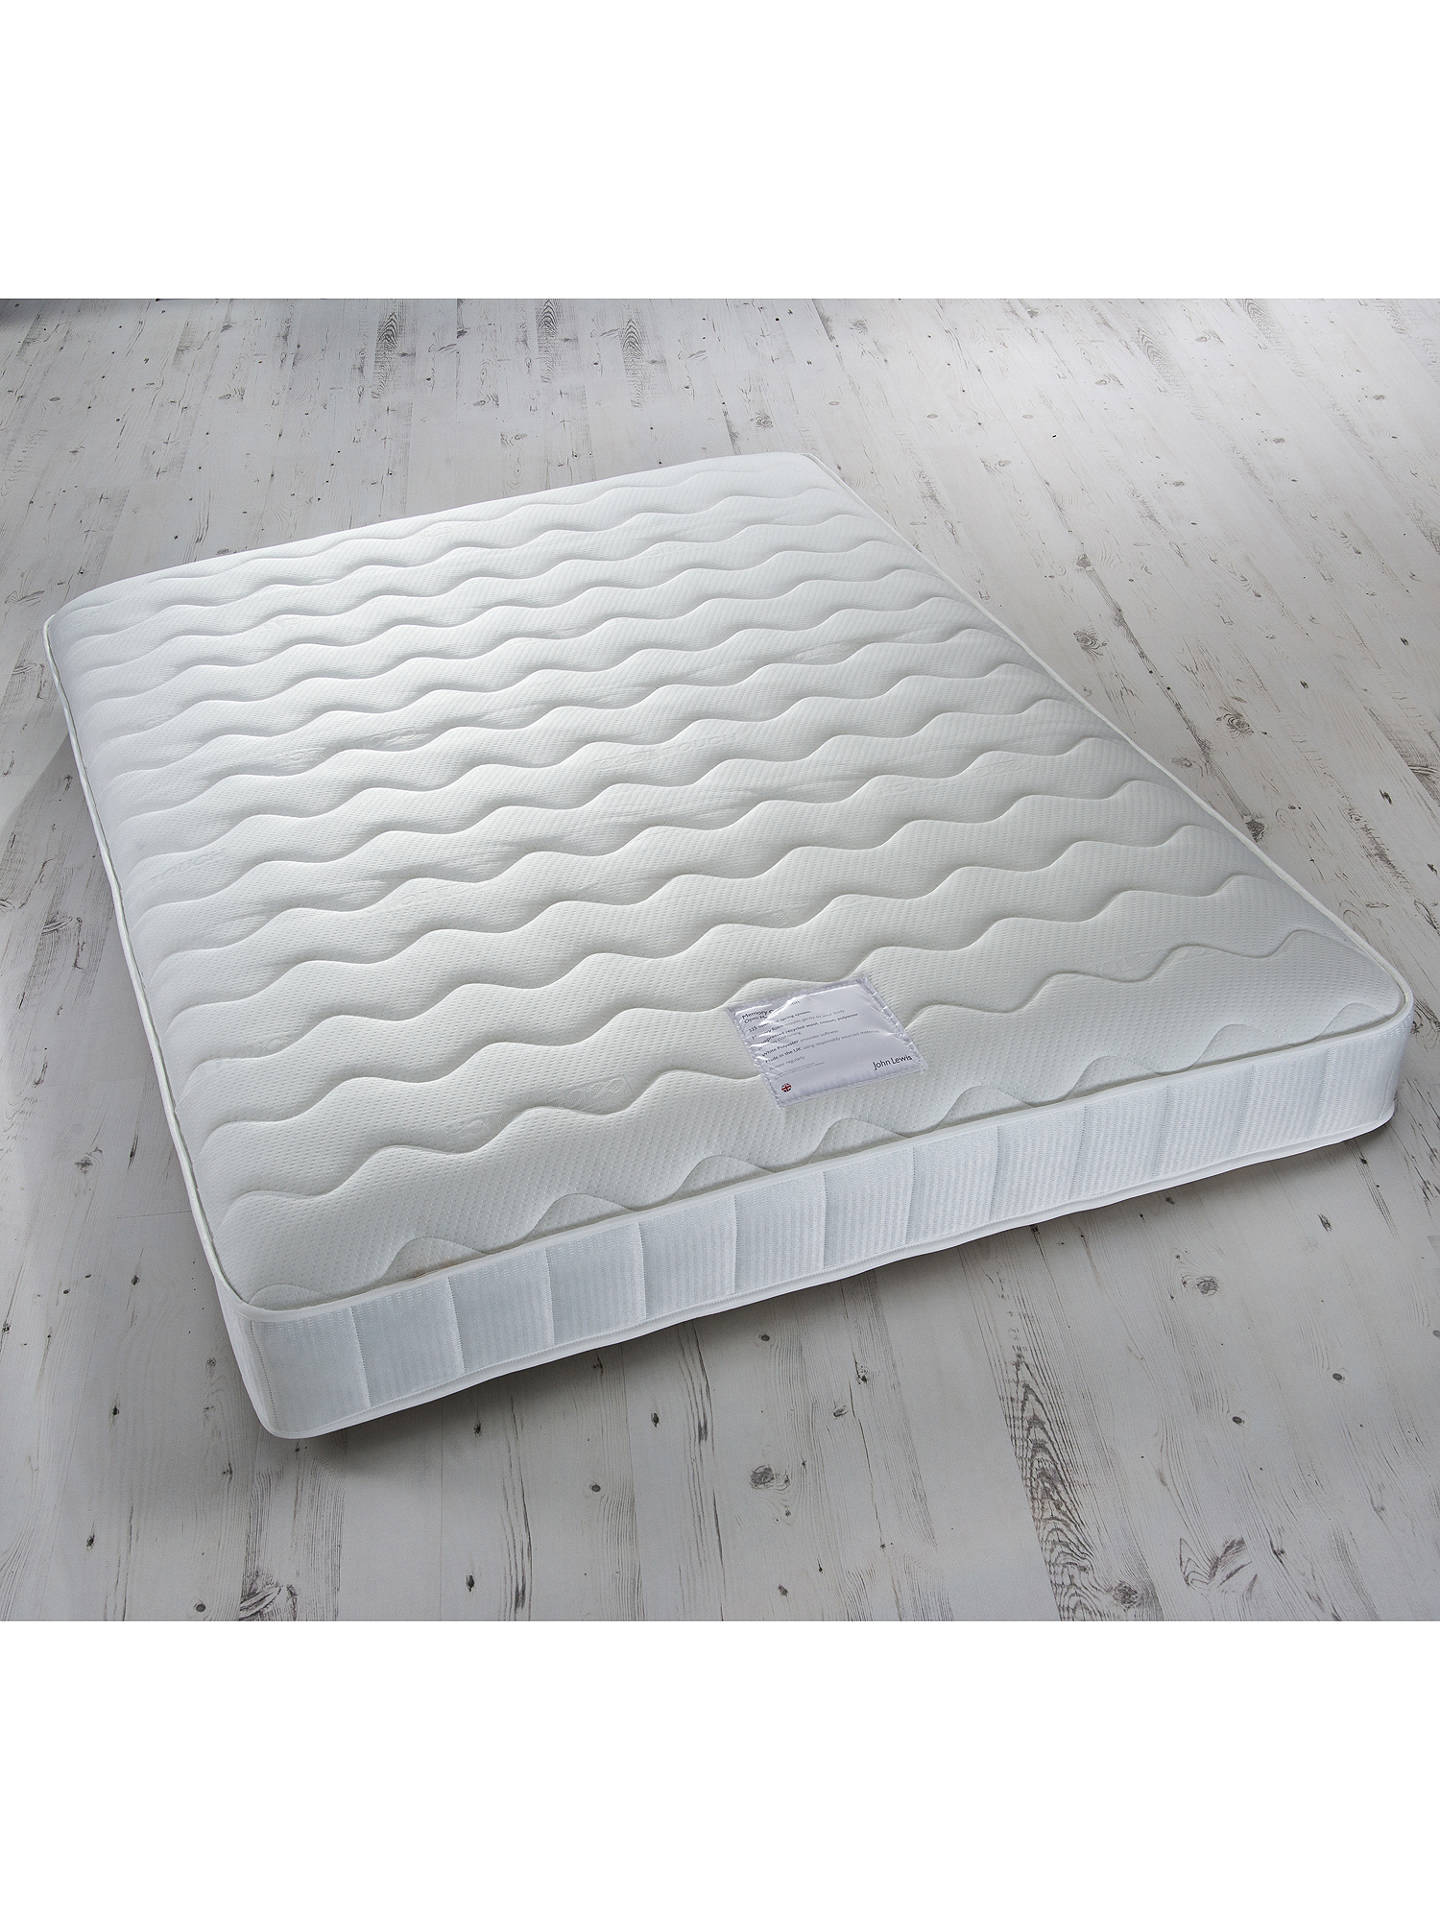 Buy John Lewis & Partners Memory Collection Open Spring Memory Foam Mattress, Medium, Double Online at johnlewis.com